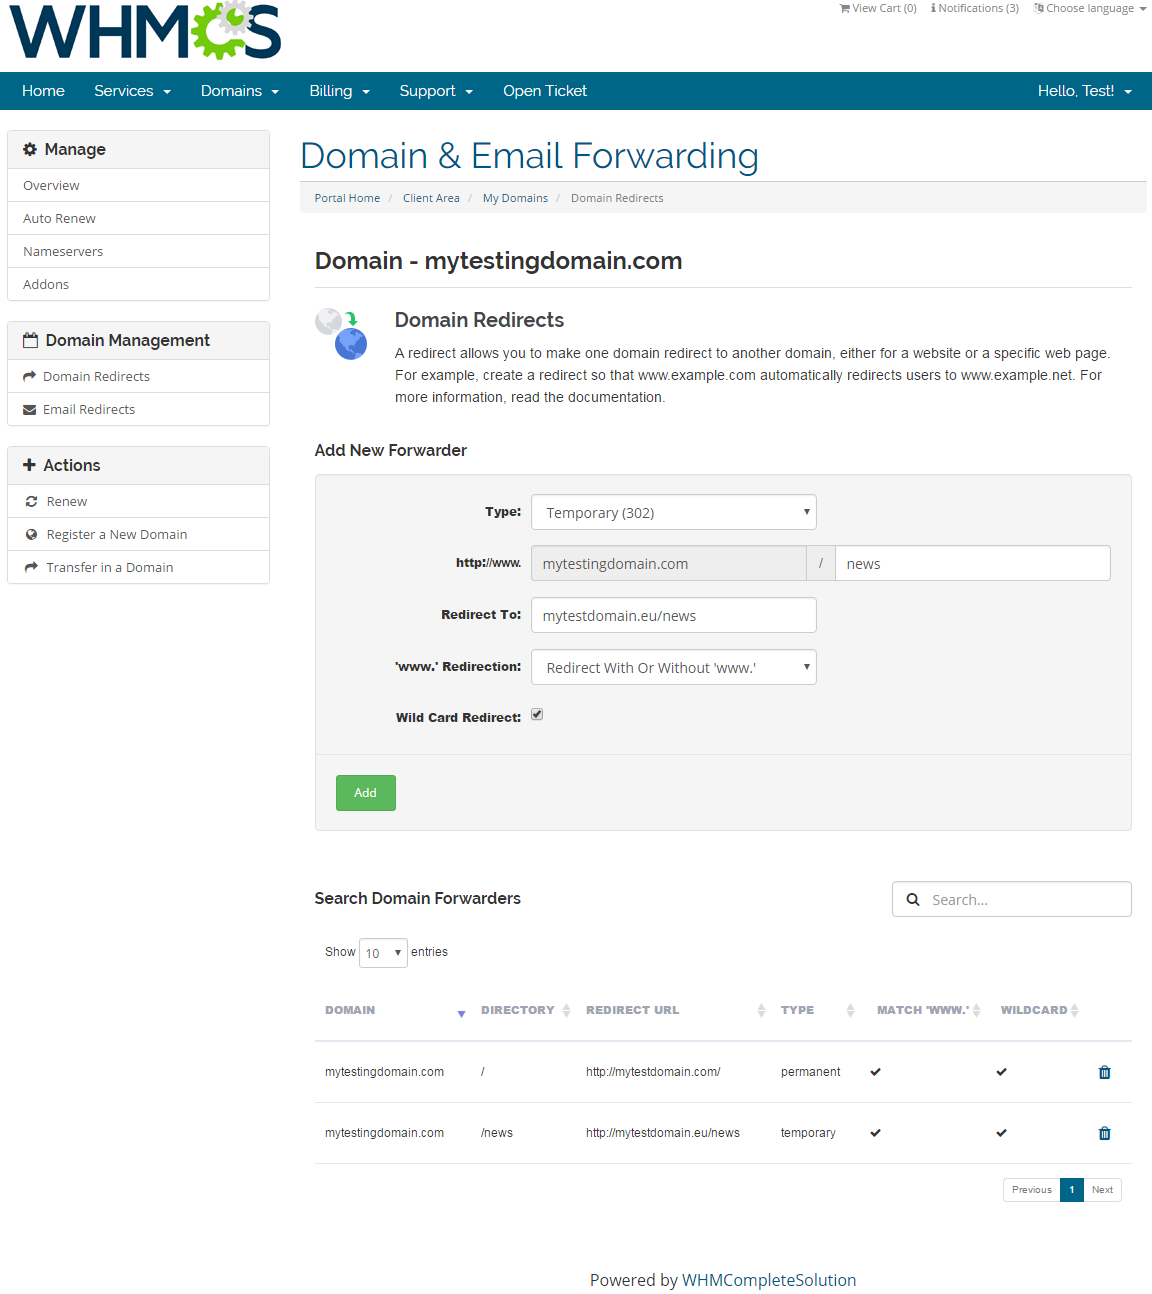 Domain & Email Forwarding For WHMCS: Screen 2